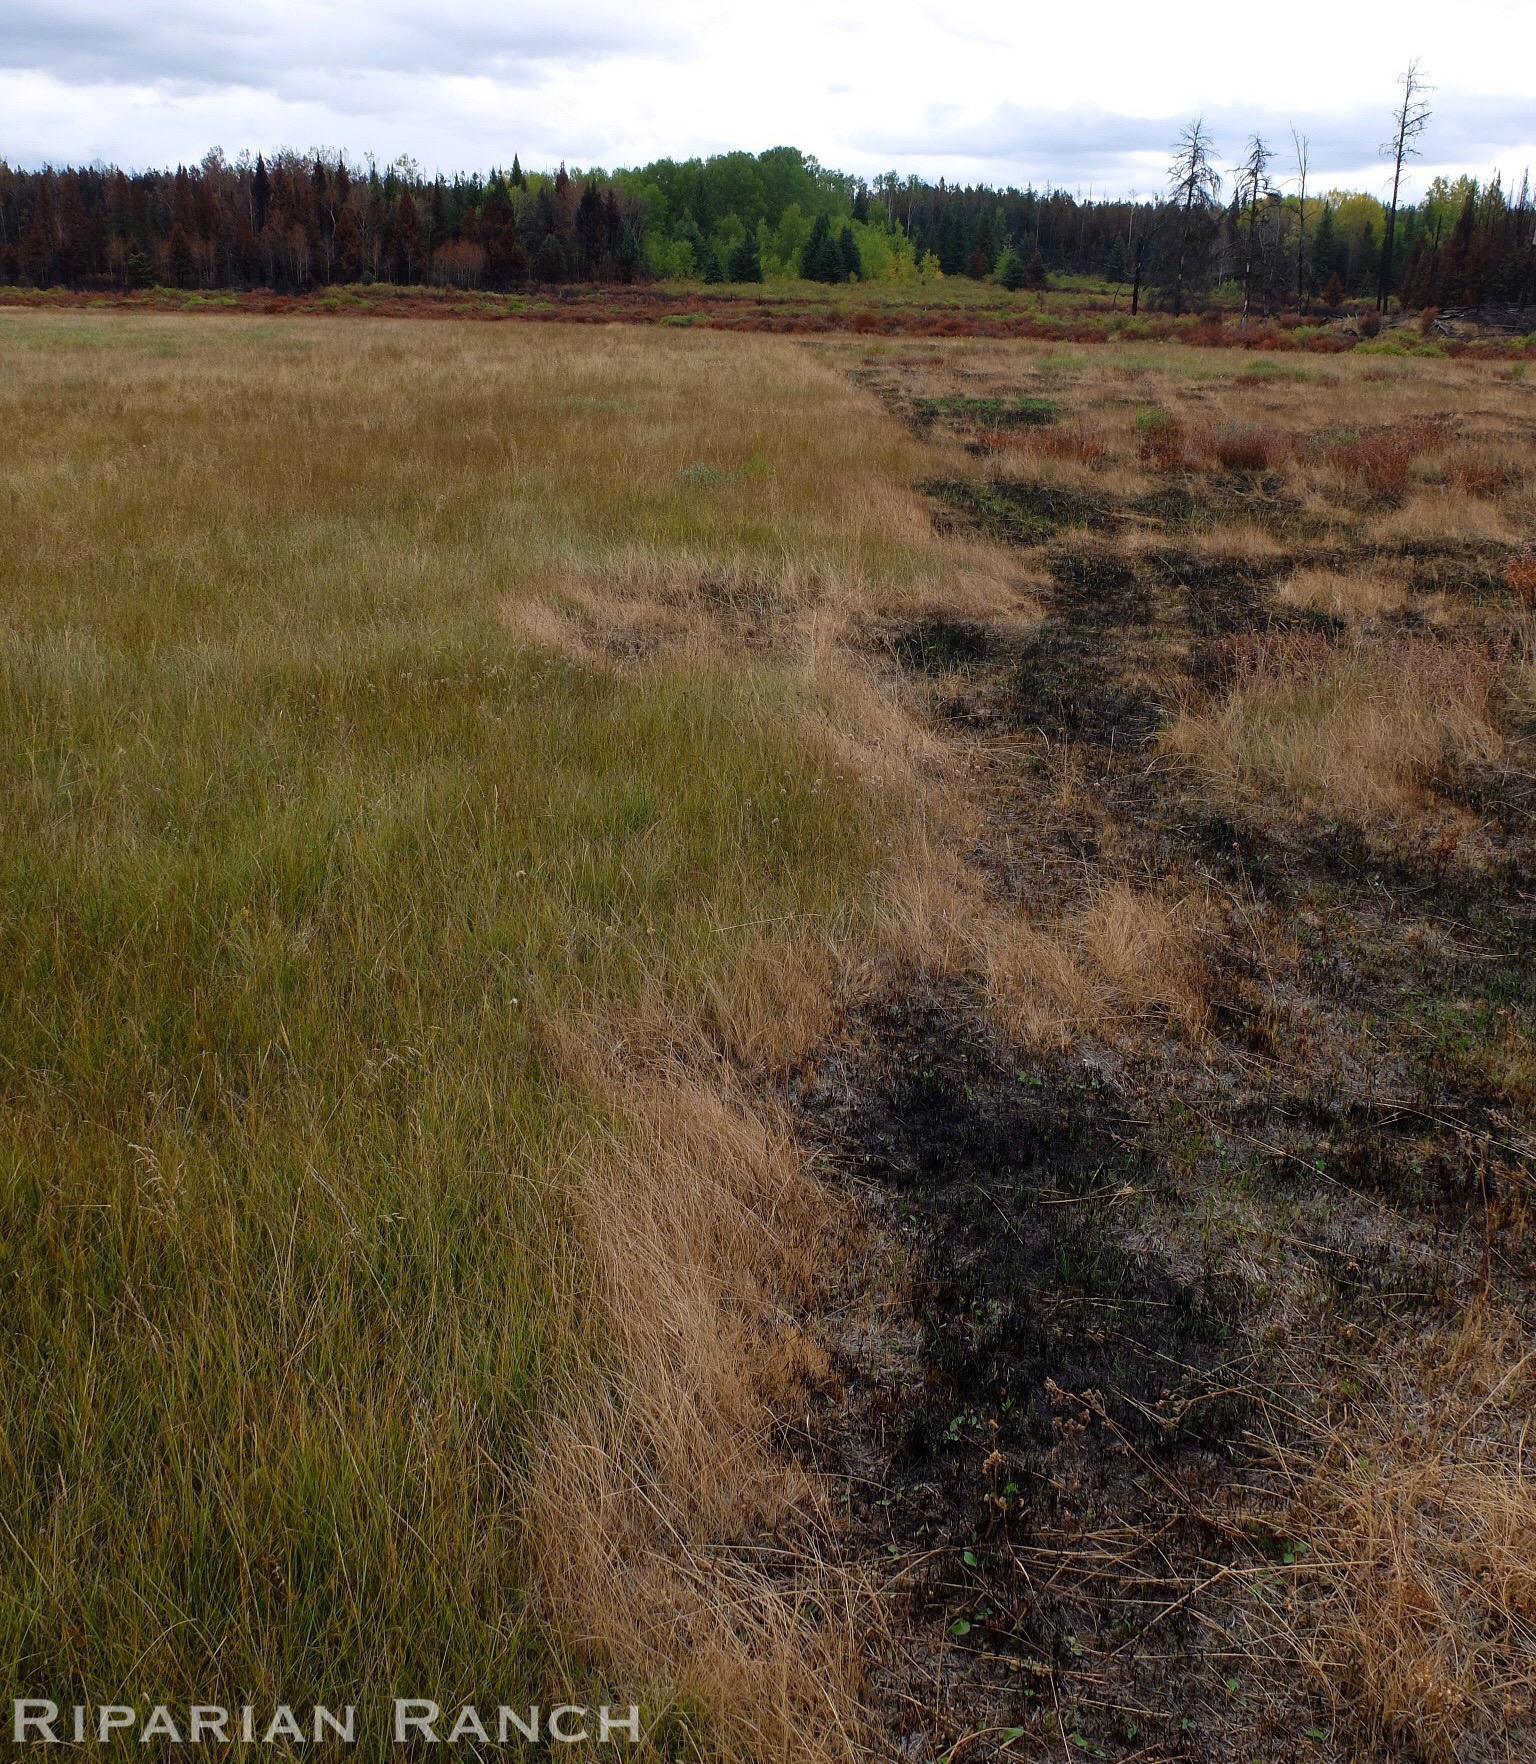 Intensively grazed pasture stopped the spread of fire